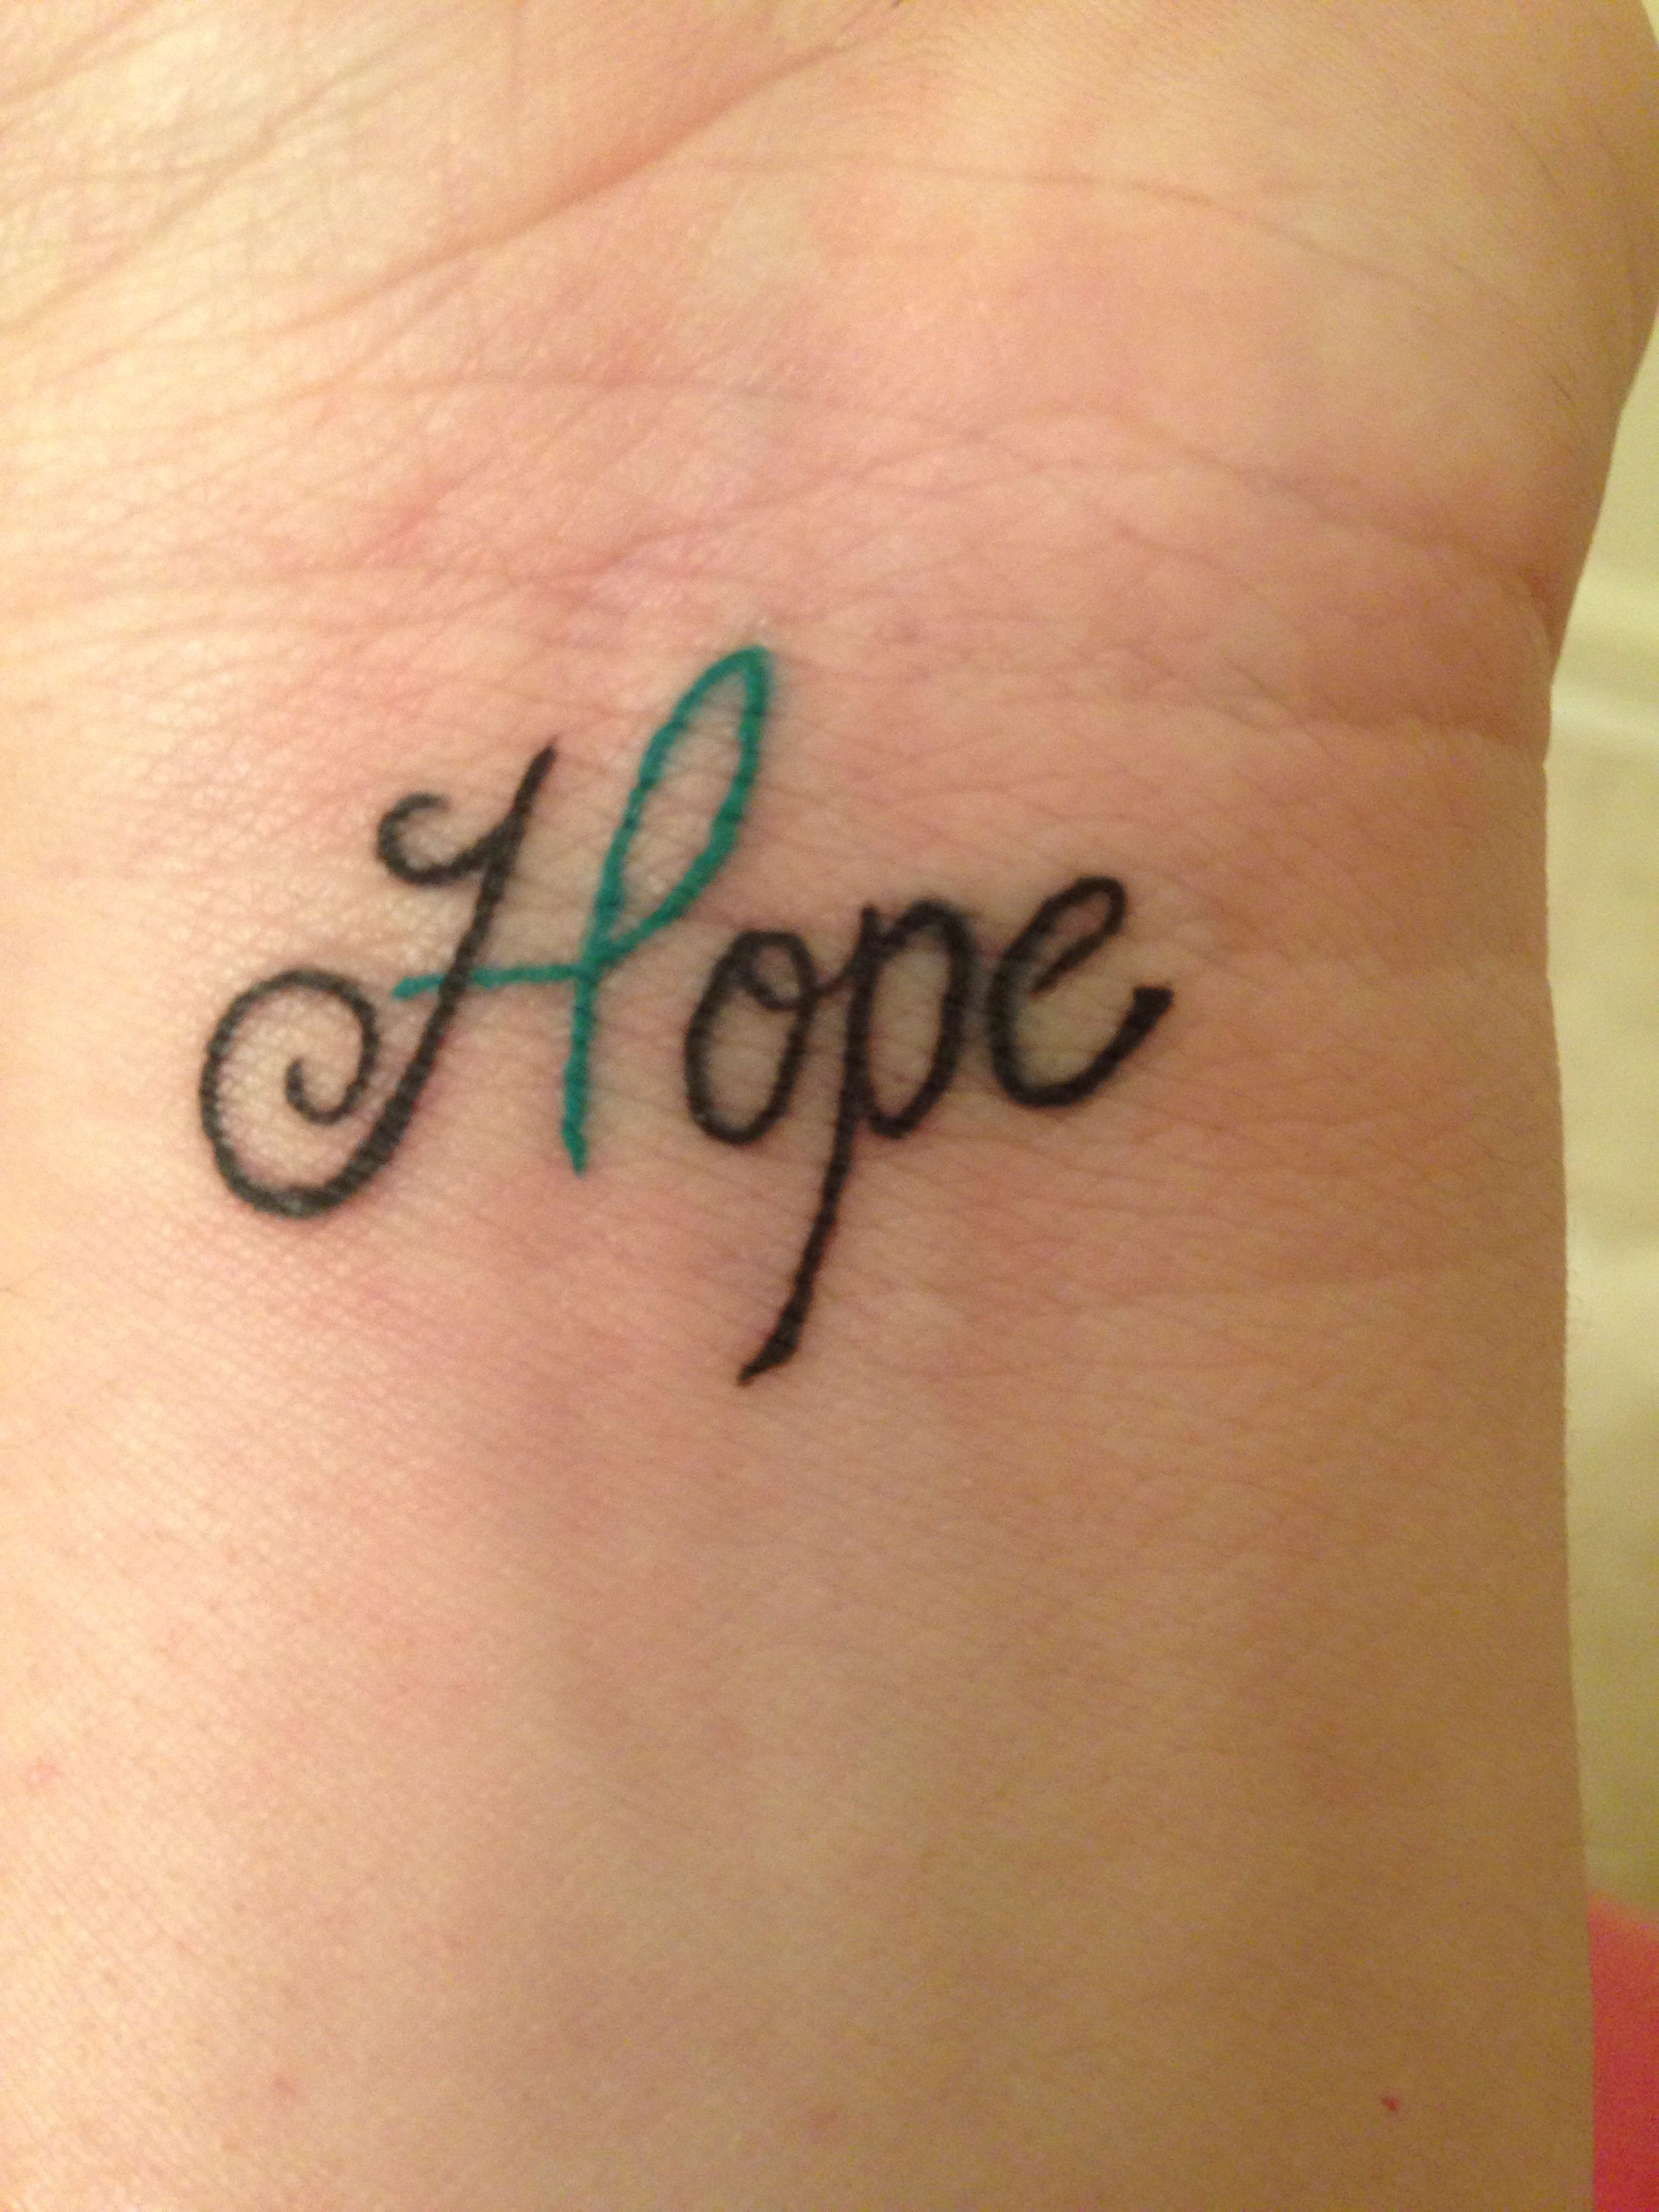 My Hope Wrist Tattoo W Green Mental Health Awareness Ribbon Yay For Being